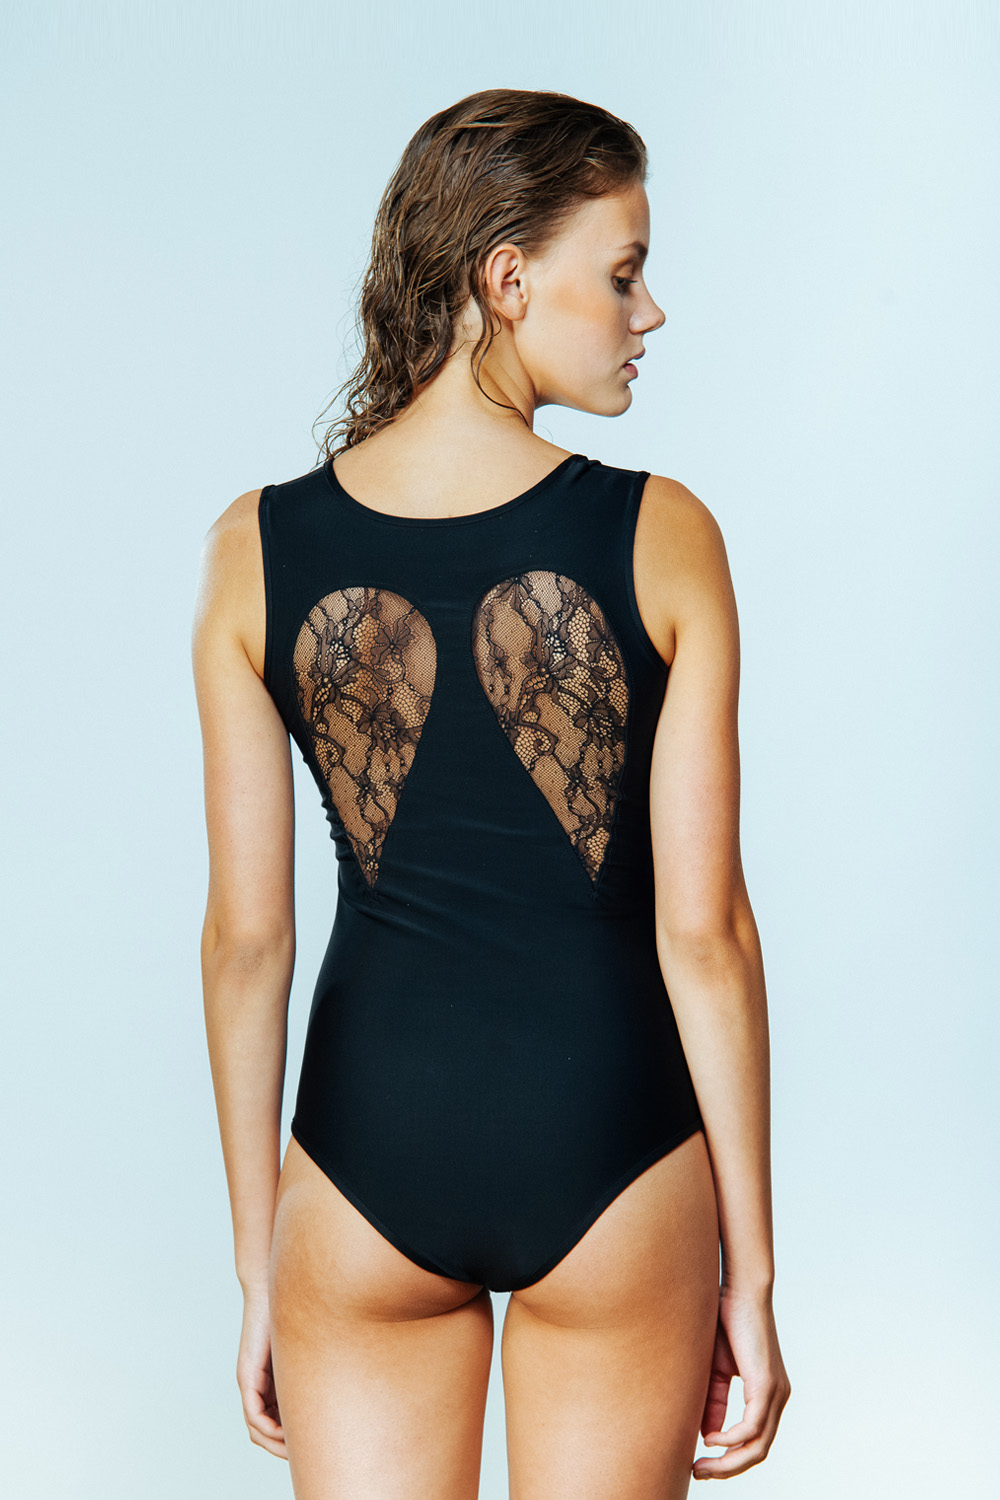 Swim Wings Swimsuit by Kriss Soonik